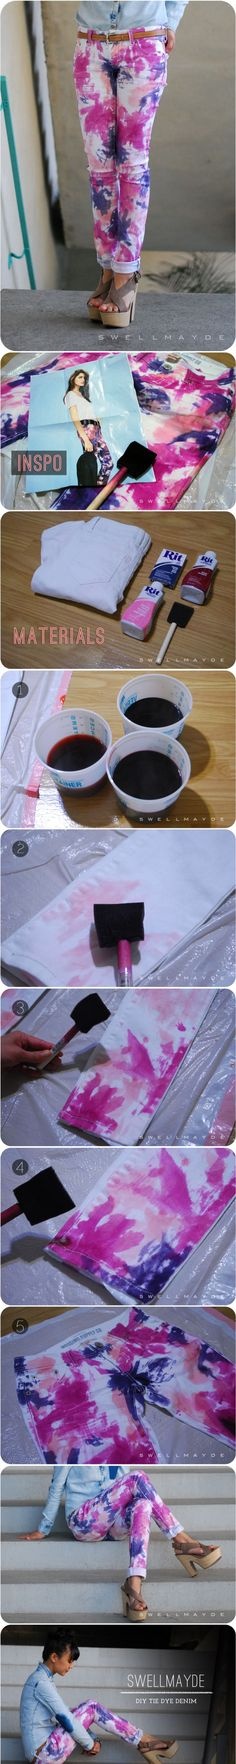 Spruce up your old white jeans with this easy and affordable DIY tie dye denim.